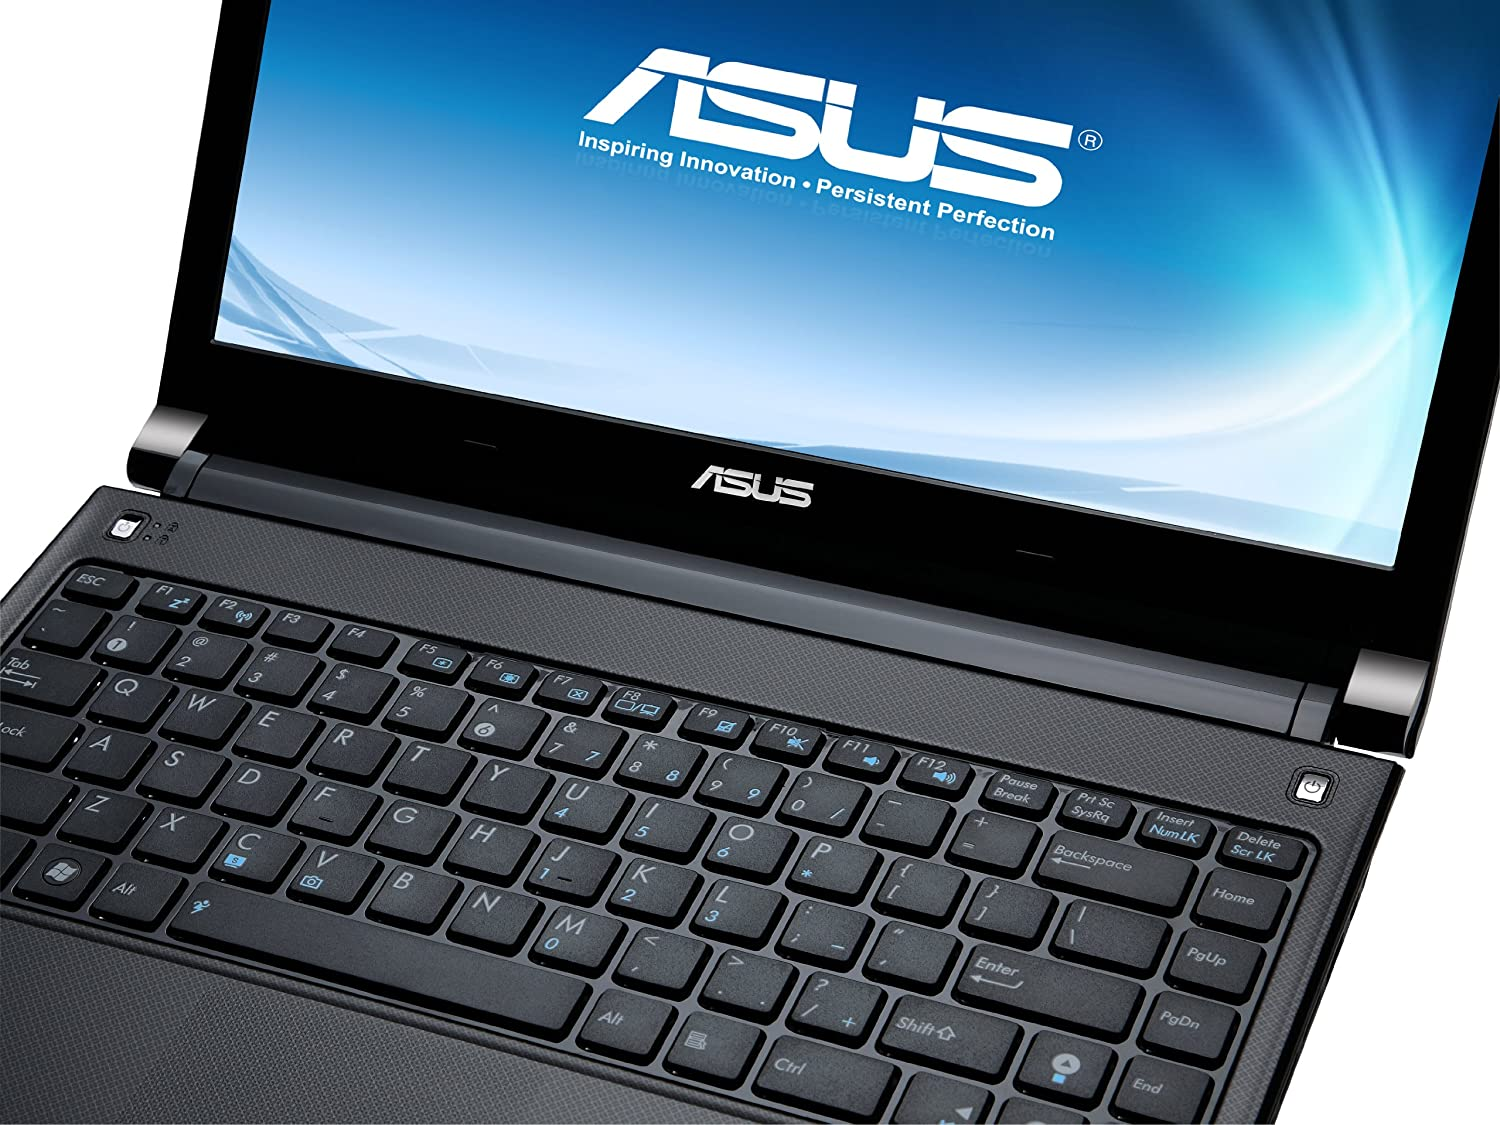 Asus U35JC Notebook Fingerprint Windows 8 Drivers Download (2019)